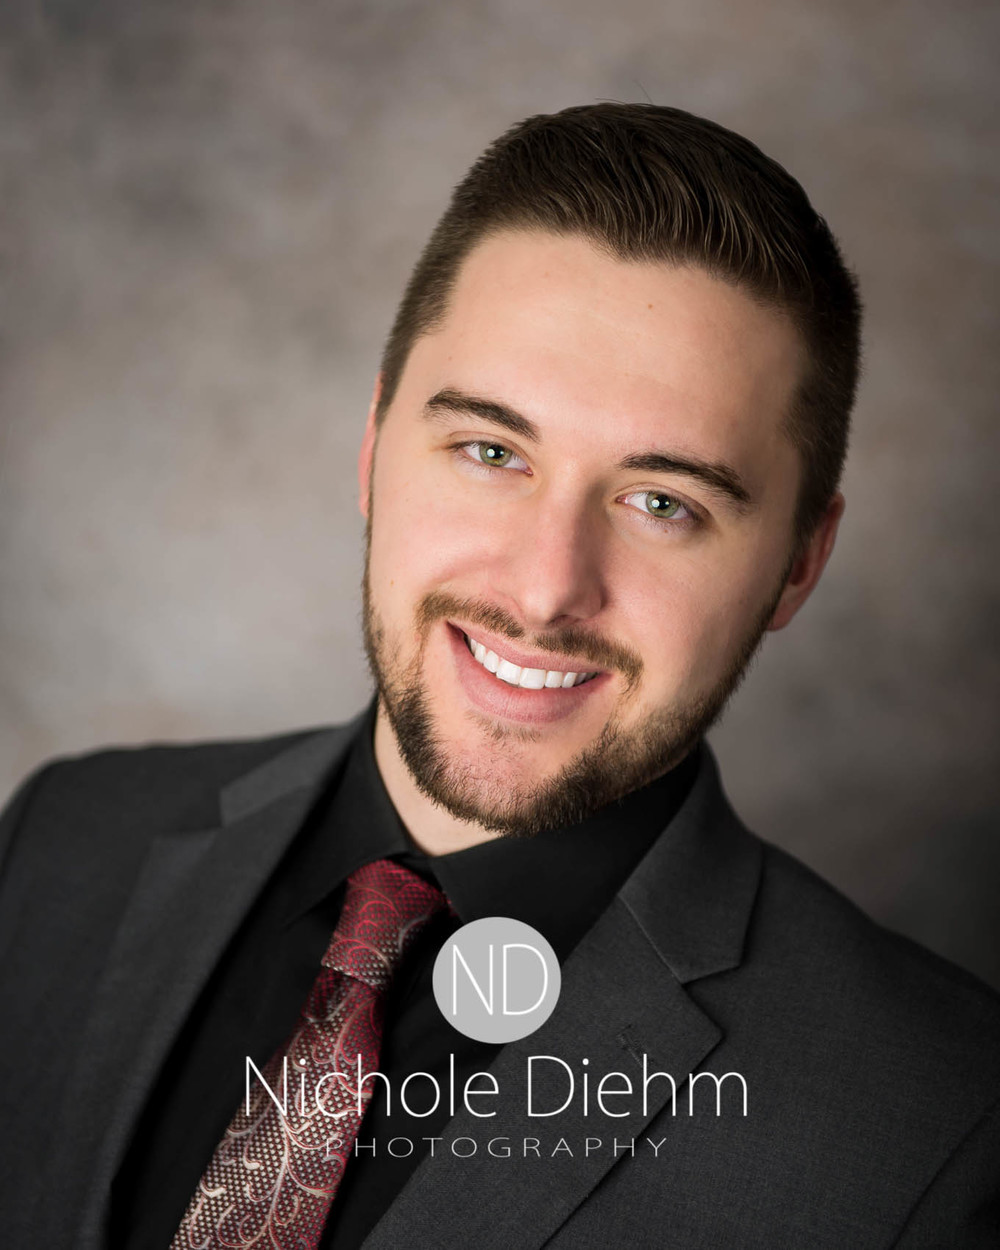 Nichole Diehm Photography Headshots Zach Kowalik New York Life Agent-3.jpg